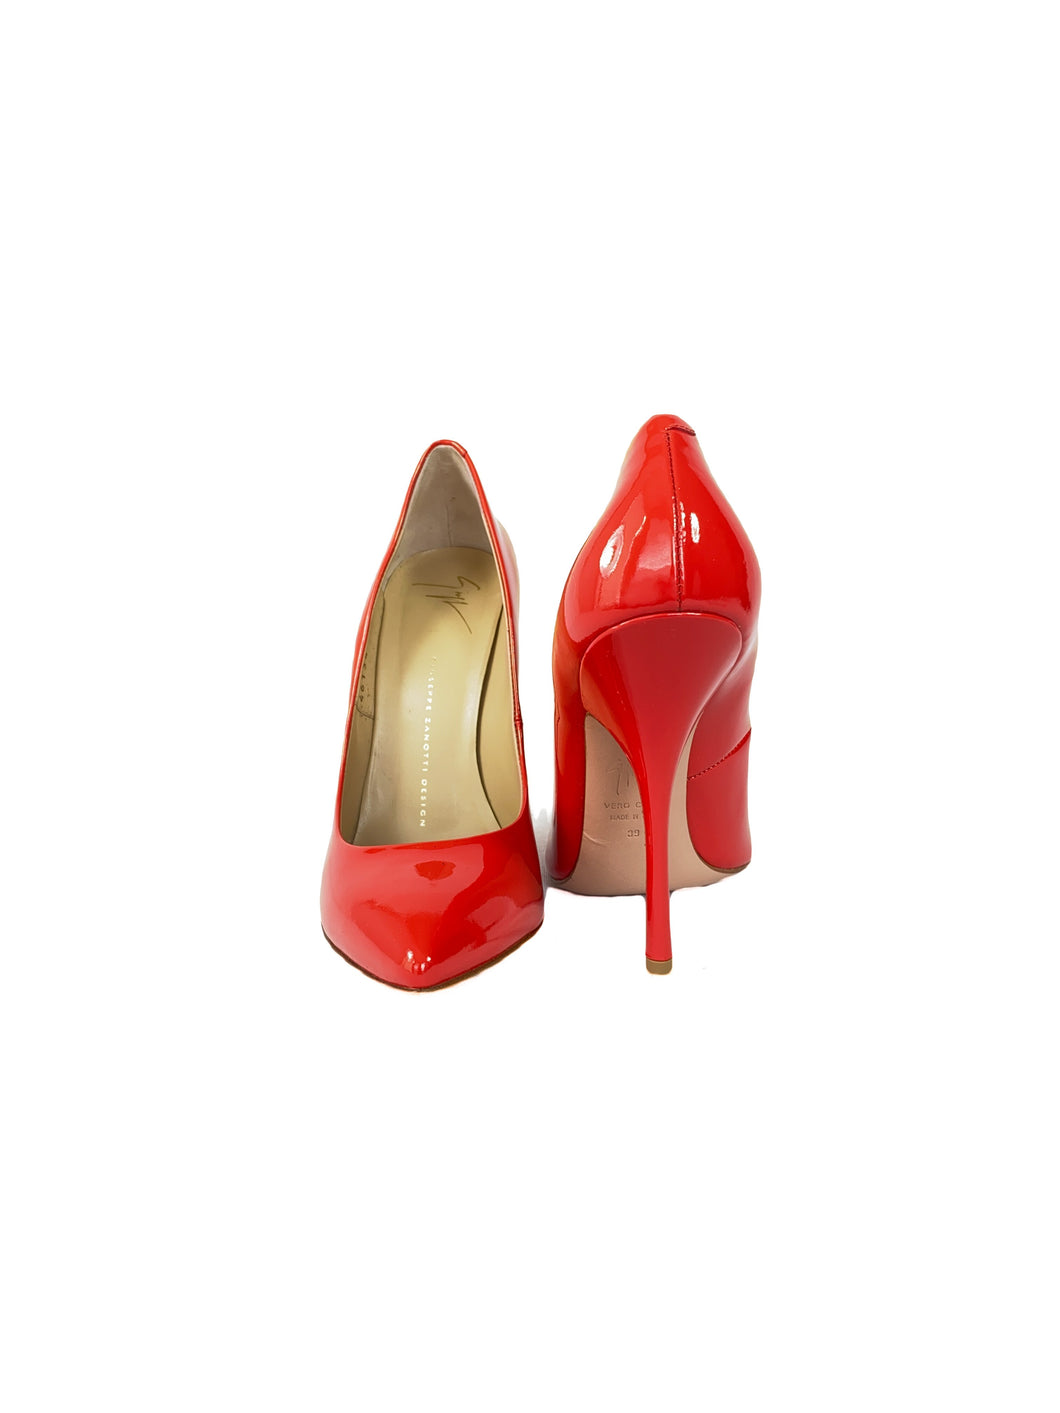 Giuseppe Zanotti Design red patent leather pump size 39 - My Girlfriend's Wardrobe LLC